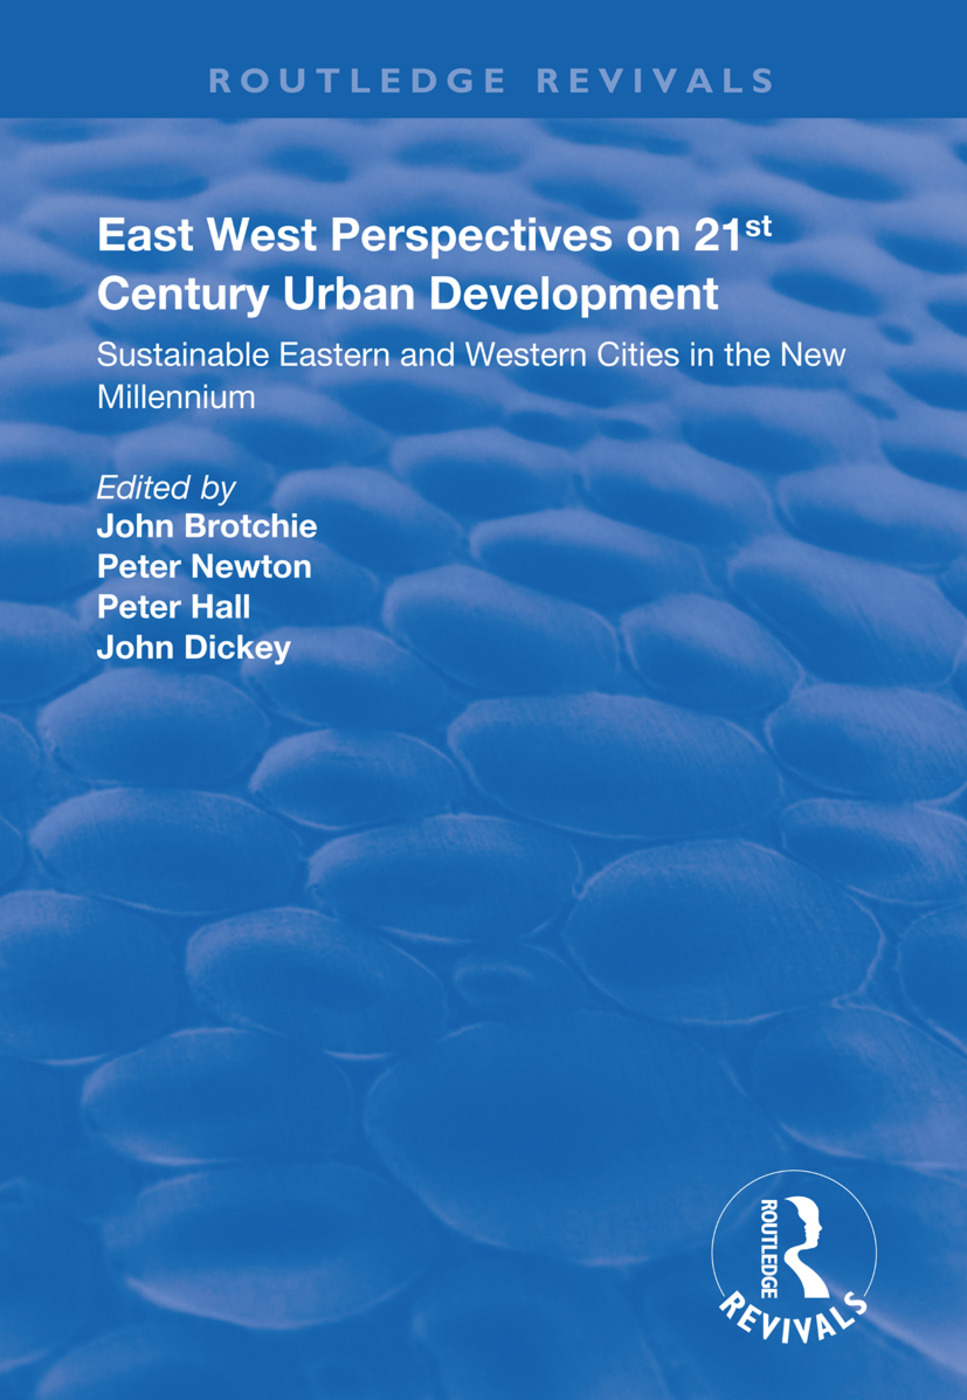 East West Perspectives on 21st Century Urban Development: Sustainable Eastern and Western Cities in the New Millennium book cover